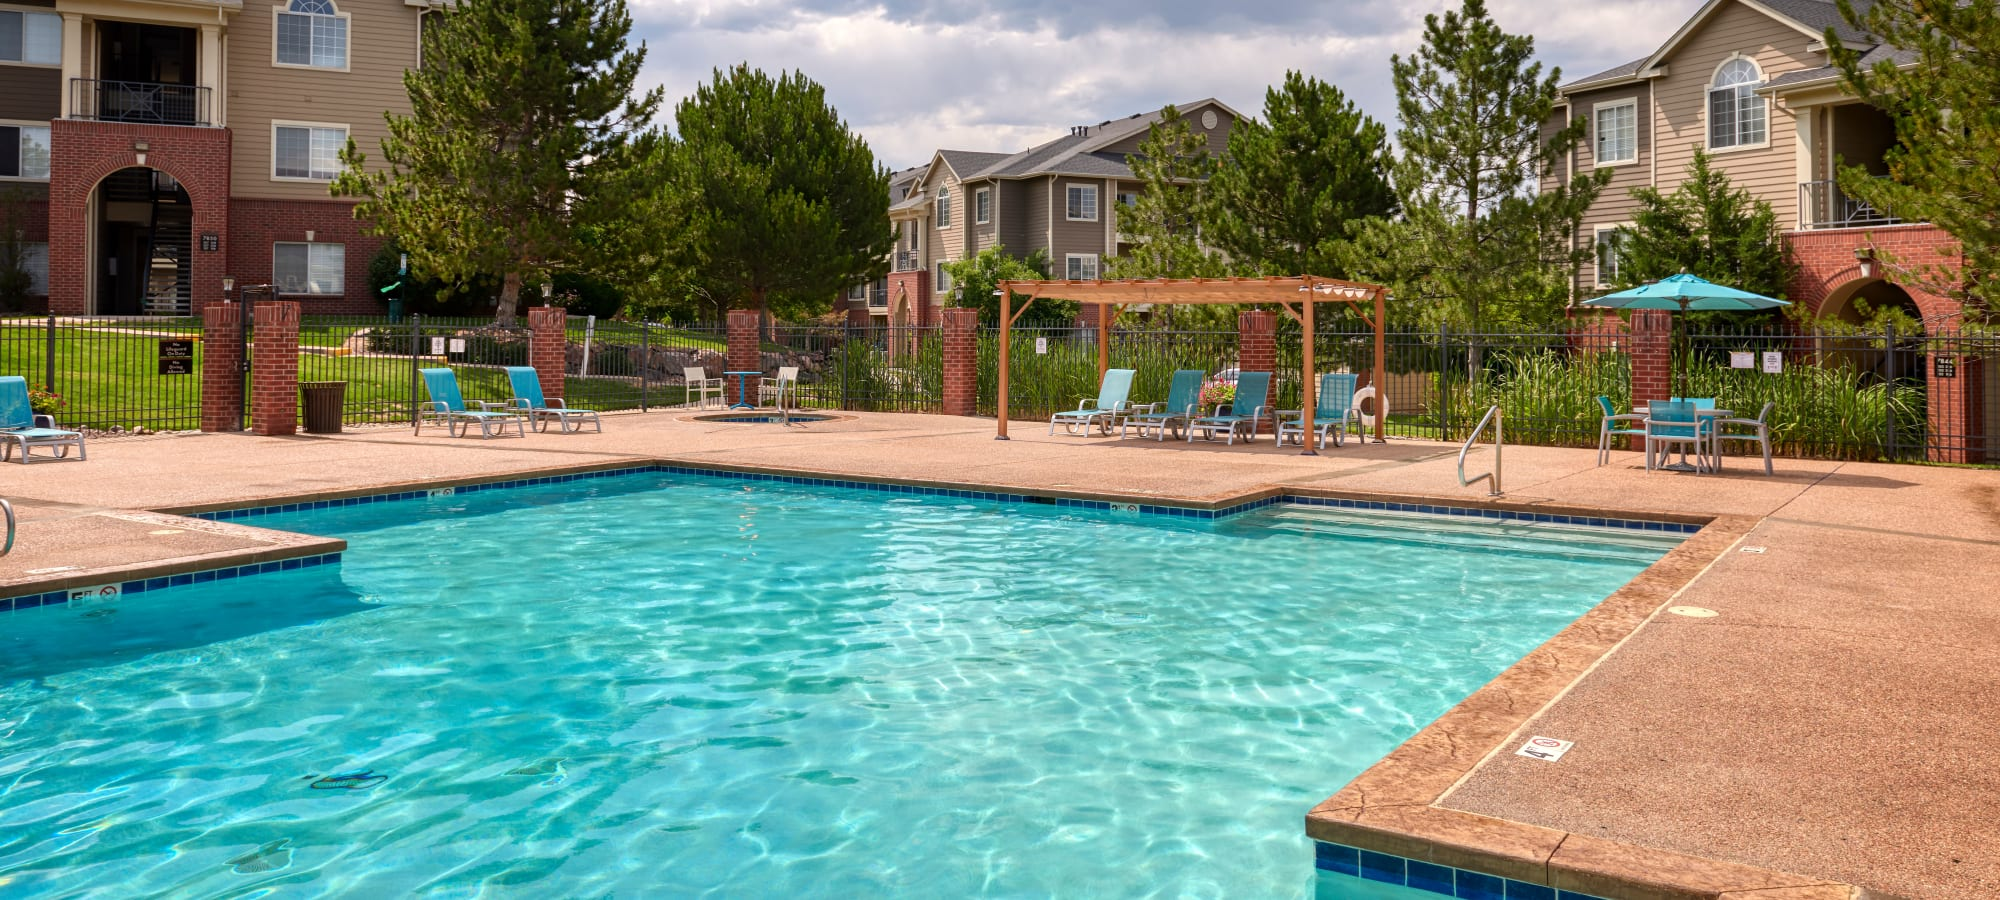 Skyecrest Apartments in Lakewood, Colorado